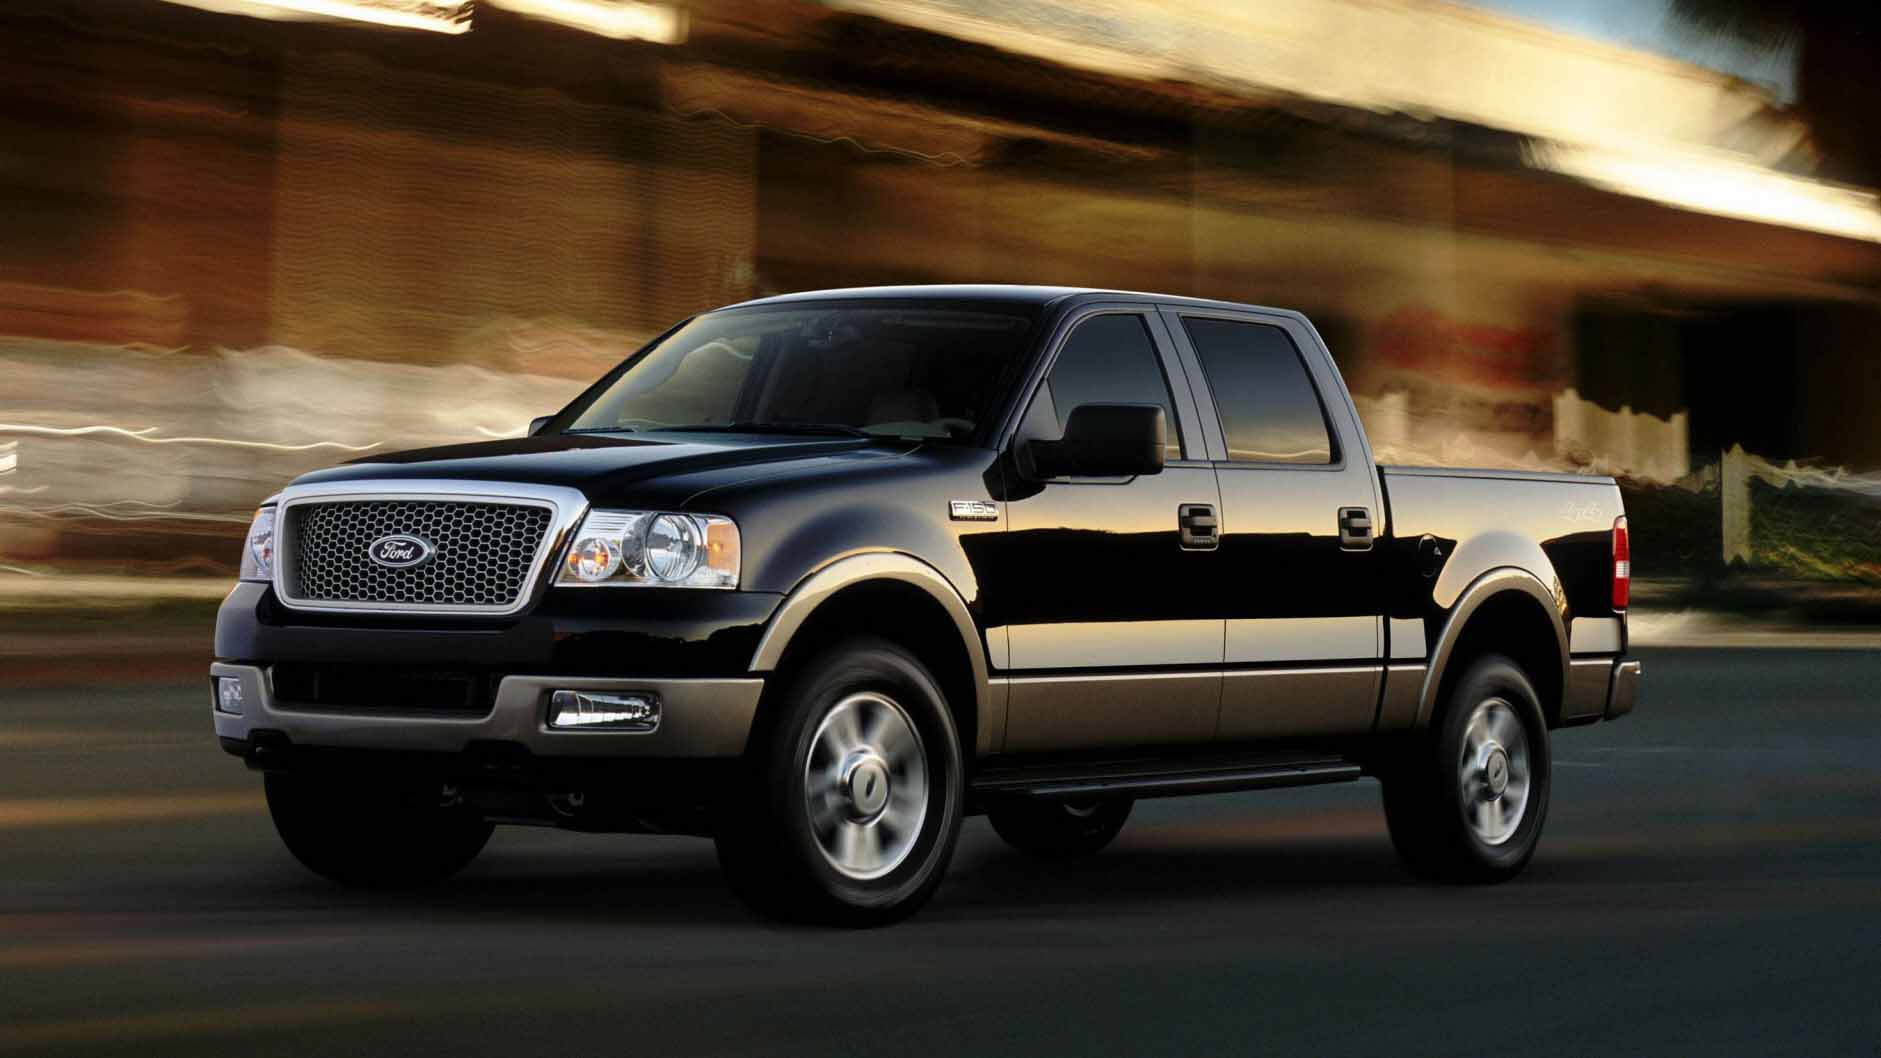 a 2004 Ford F-150 truck.